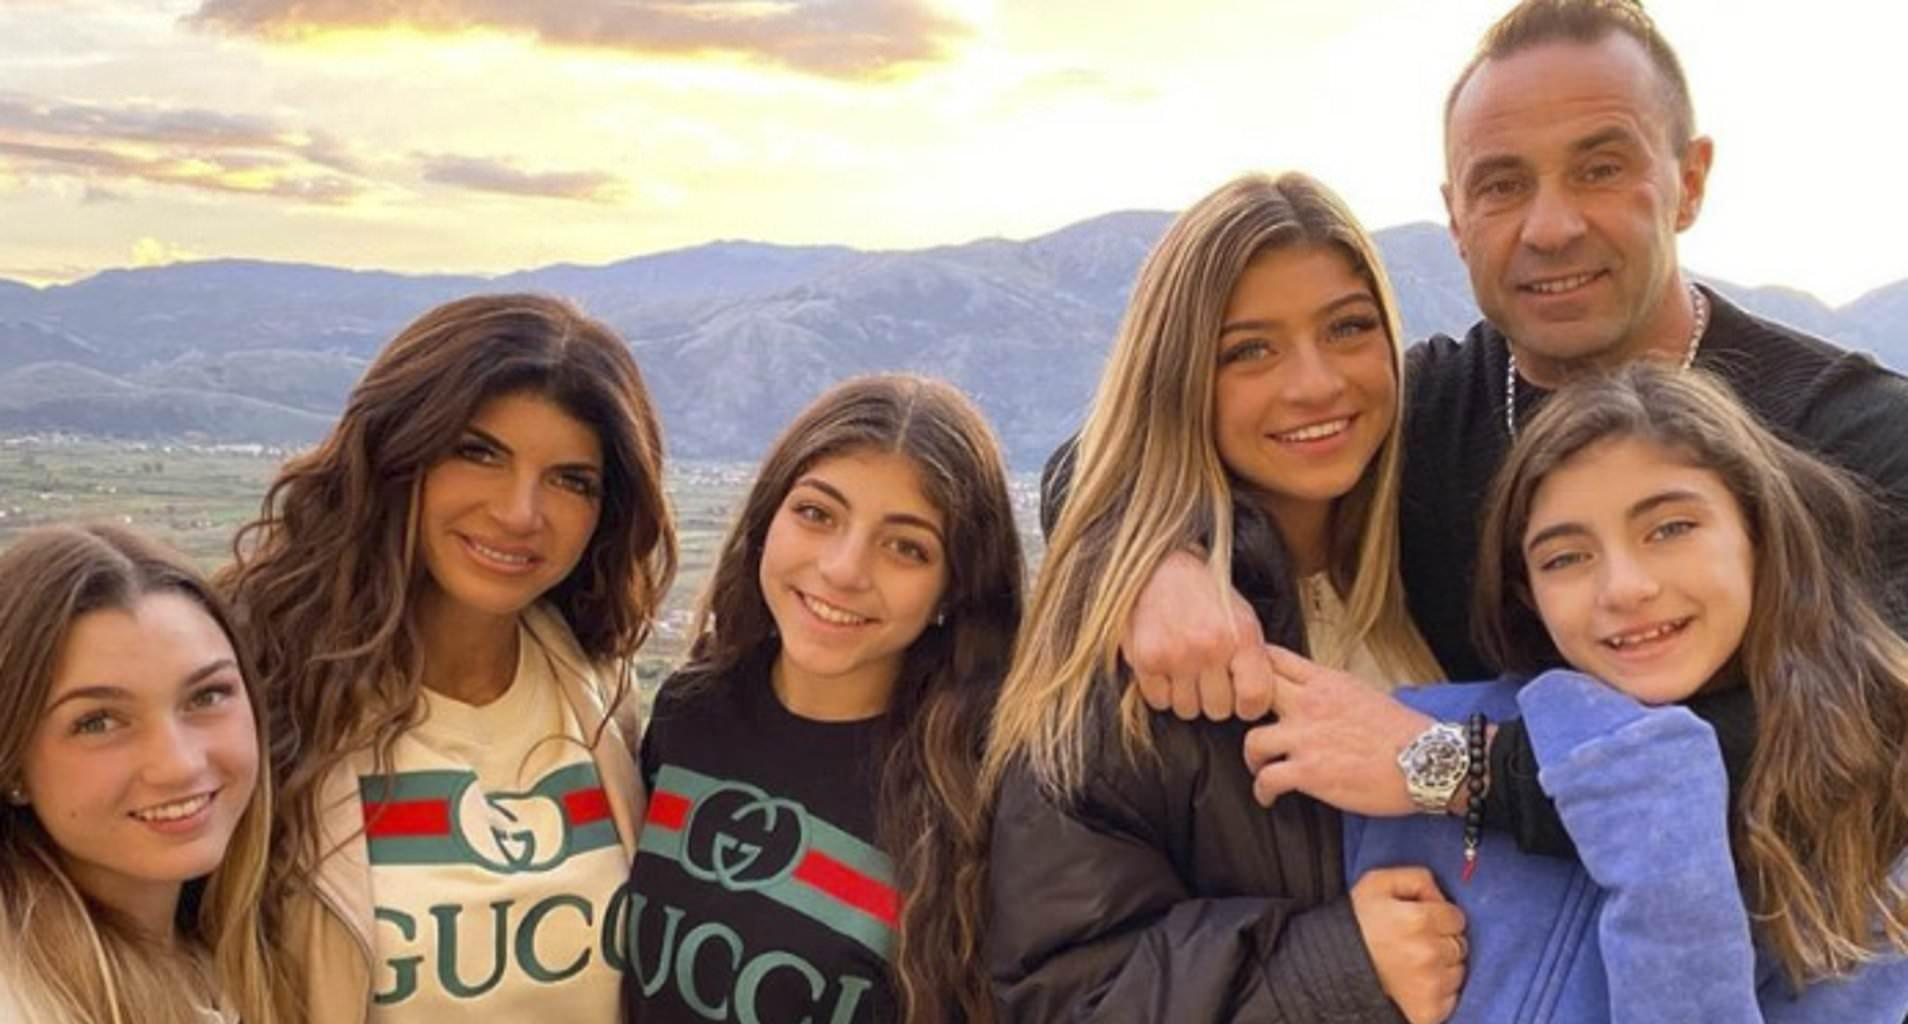 Joe Giudice's 'World Revolves Around' His Four Daughters So He's Yet To Give Up On His Deportation Appeal, Source Says